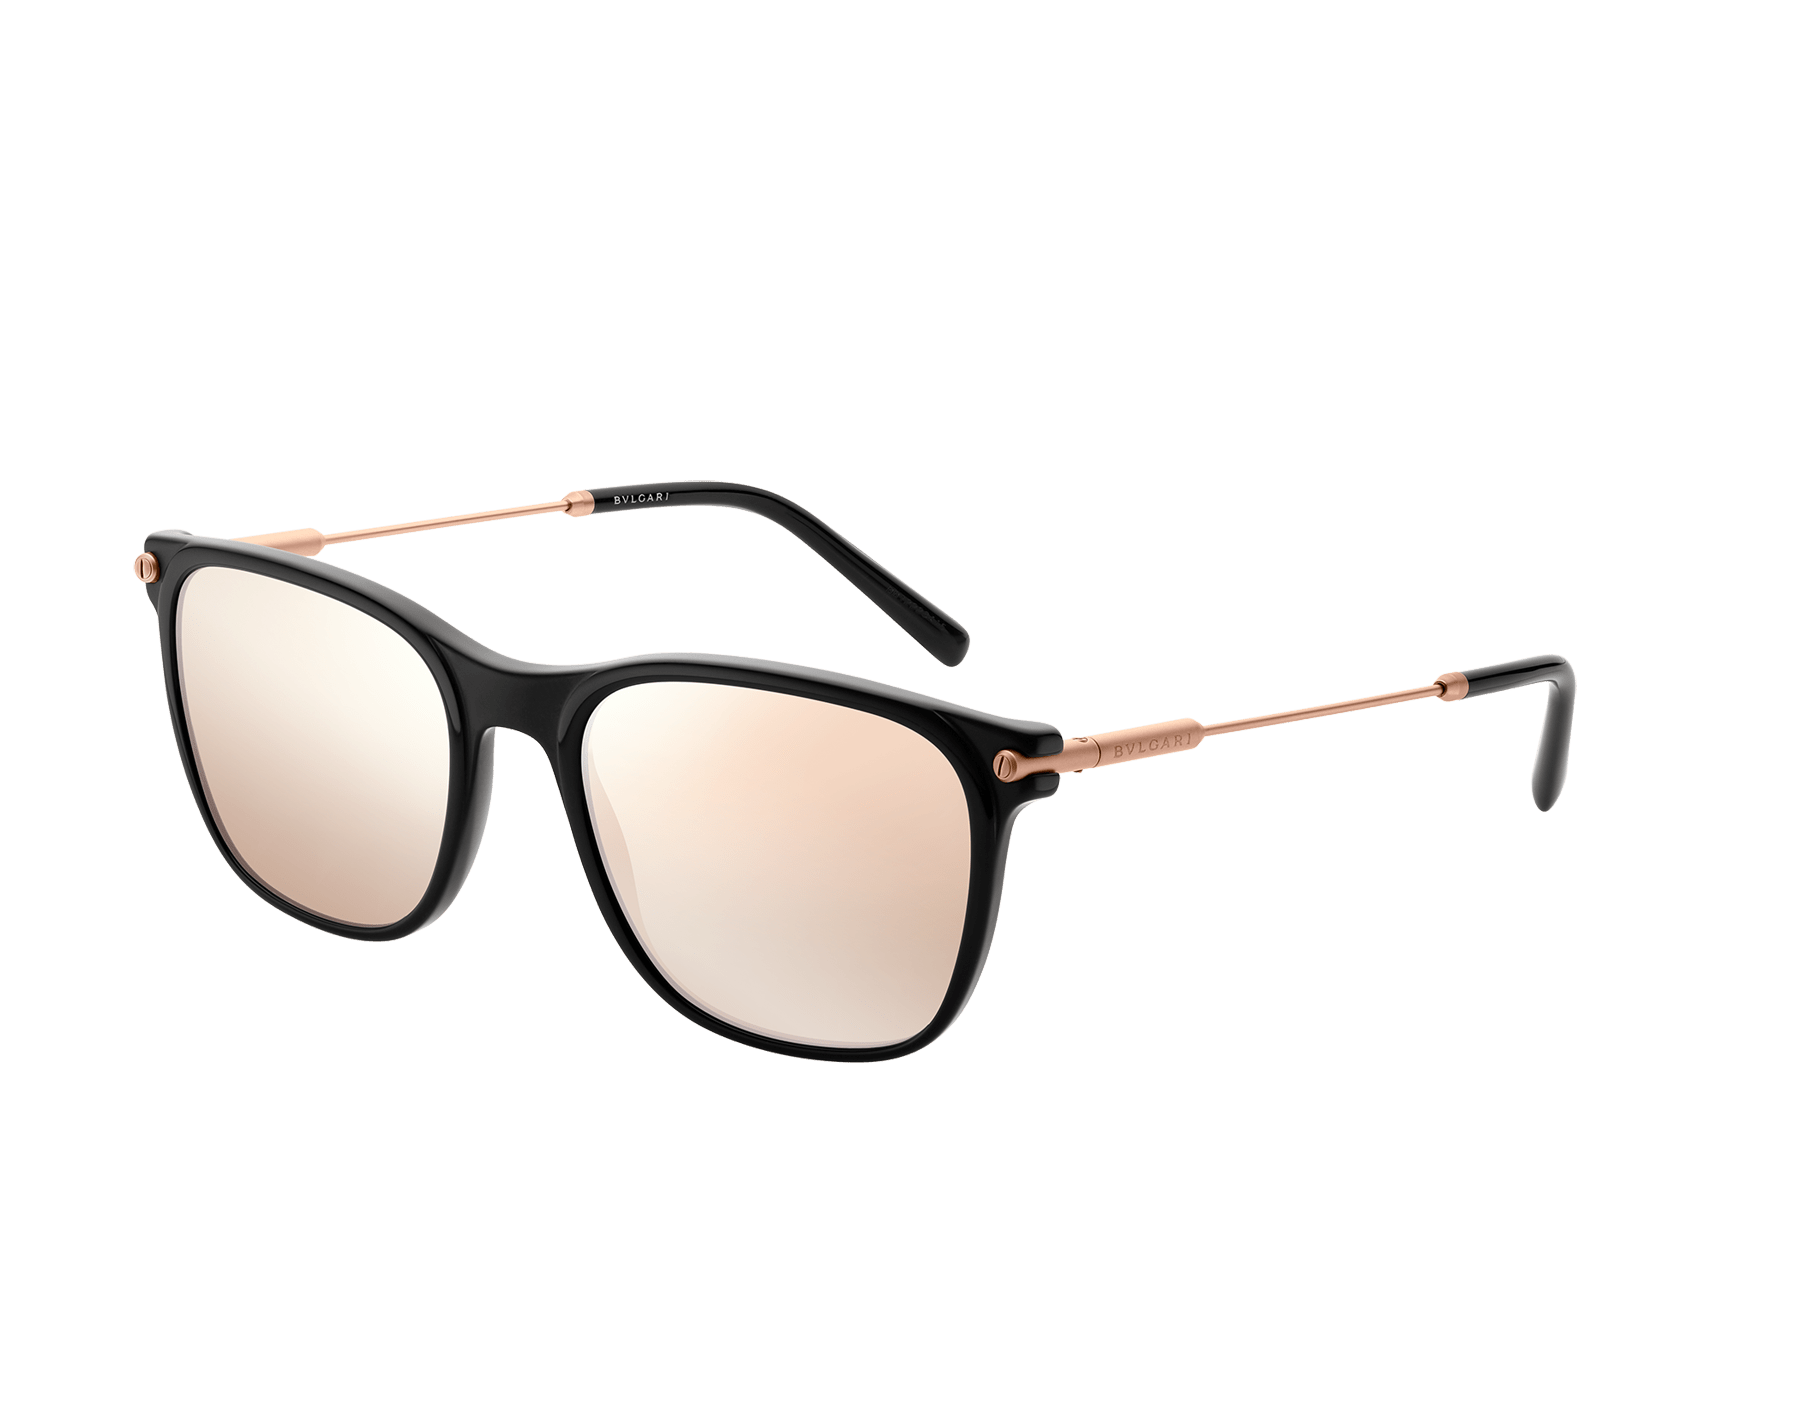 Diagono rectangular acetate sunglasses. 903601 image 1